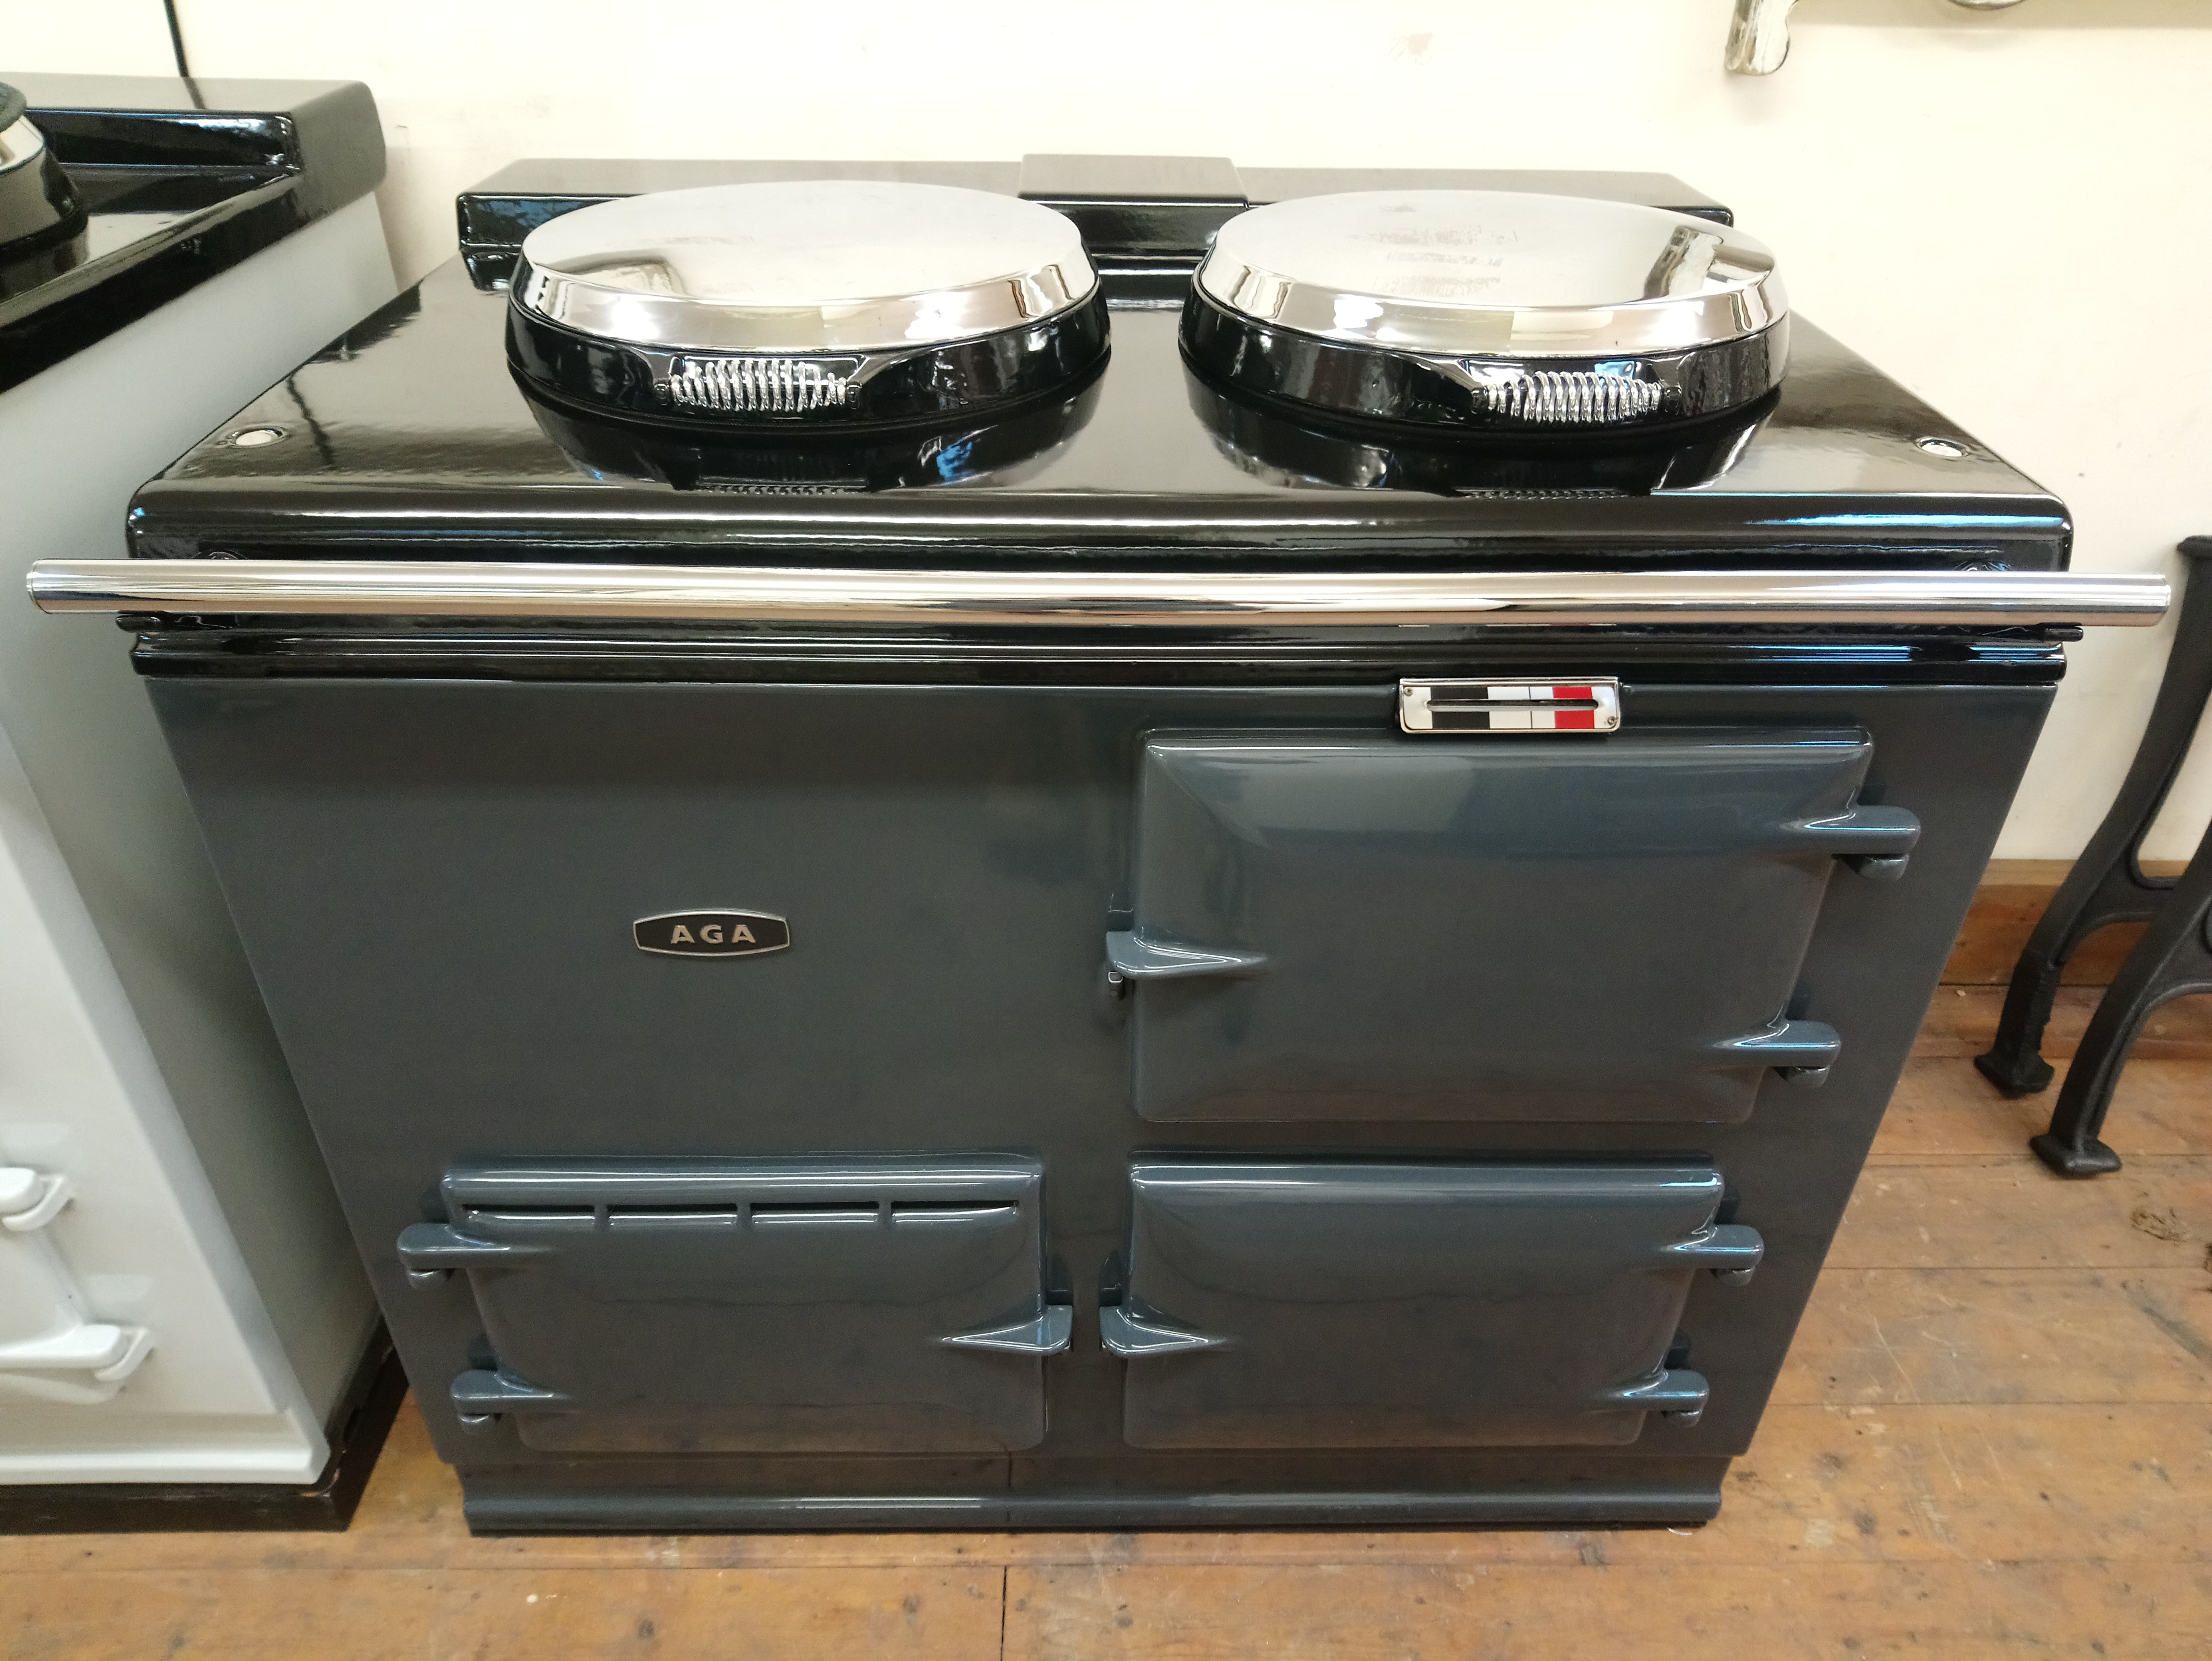 2 Oven Pre 74 Aga Cooker<br>Fully reconditioned Re-Enamelled in Graphite Grey<br><br>Electric<br><br>Installed in a 50 mile radius with 2 years guarantee<br><br>Charge for over 50 miles <br>